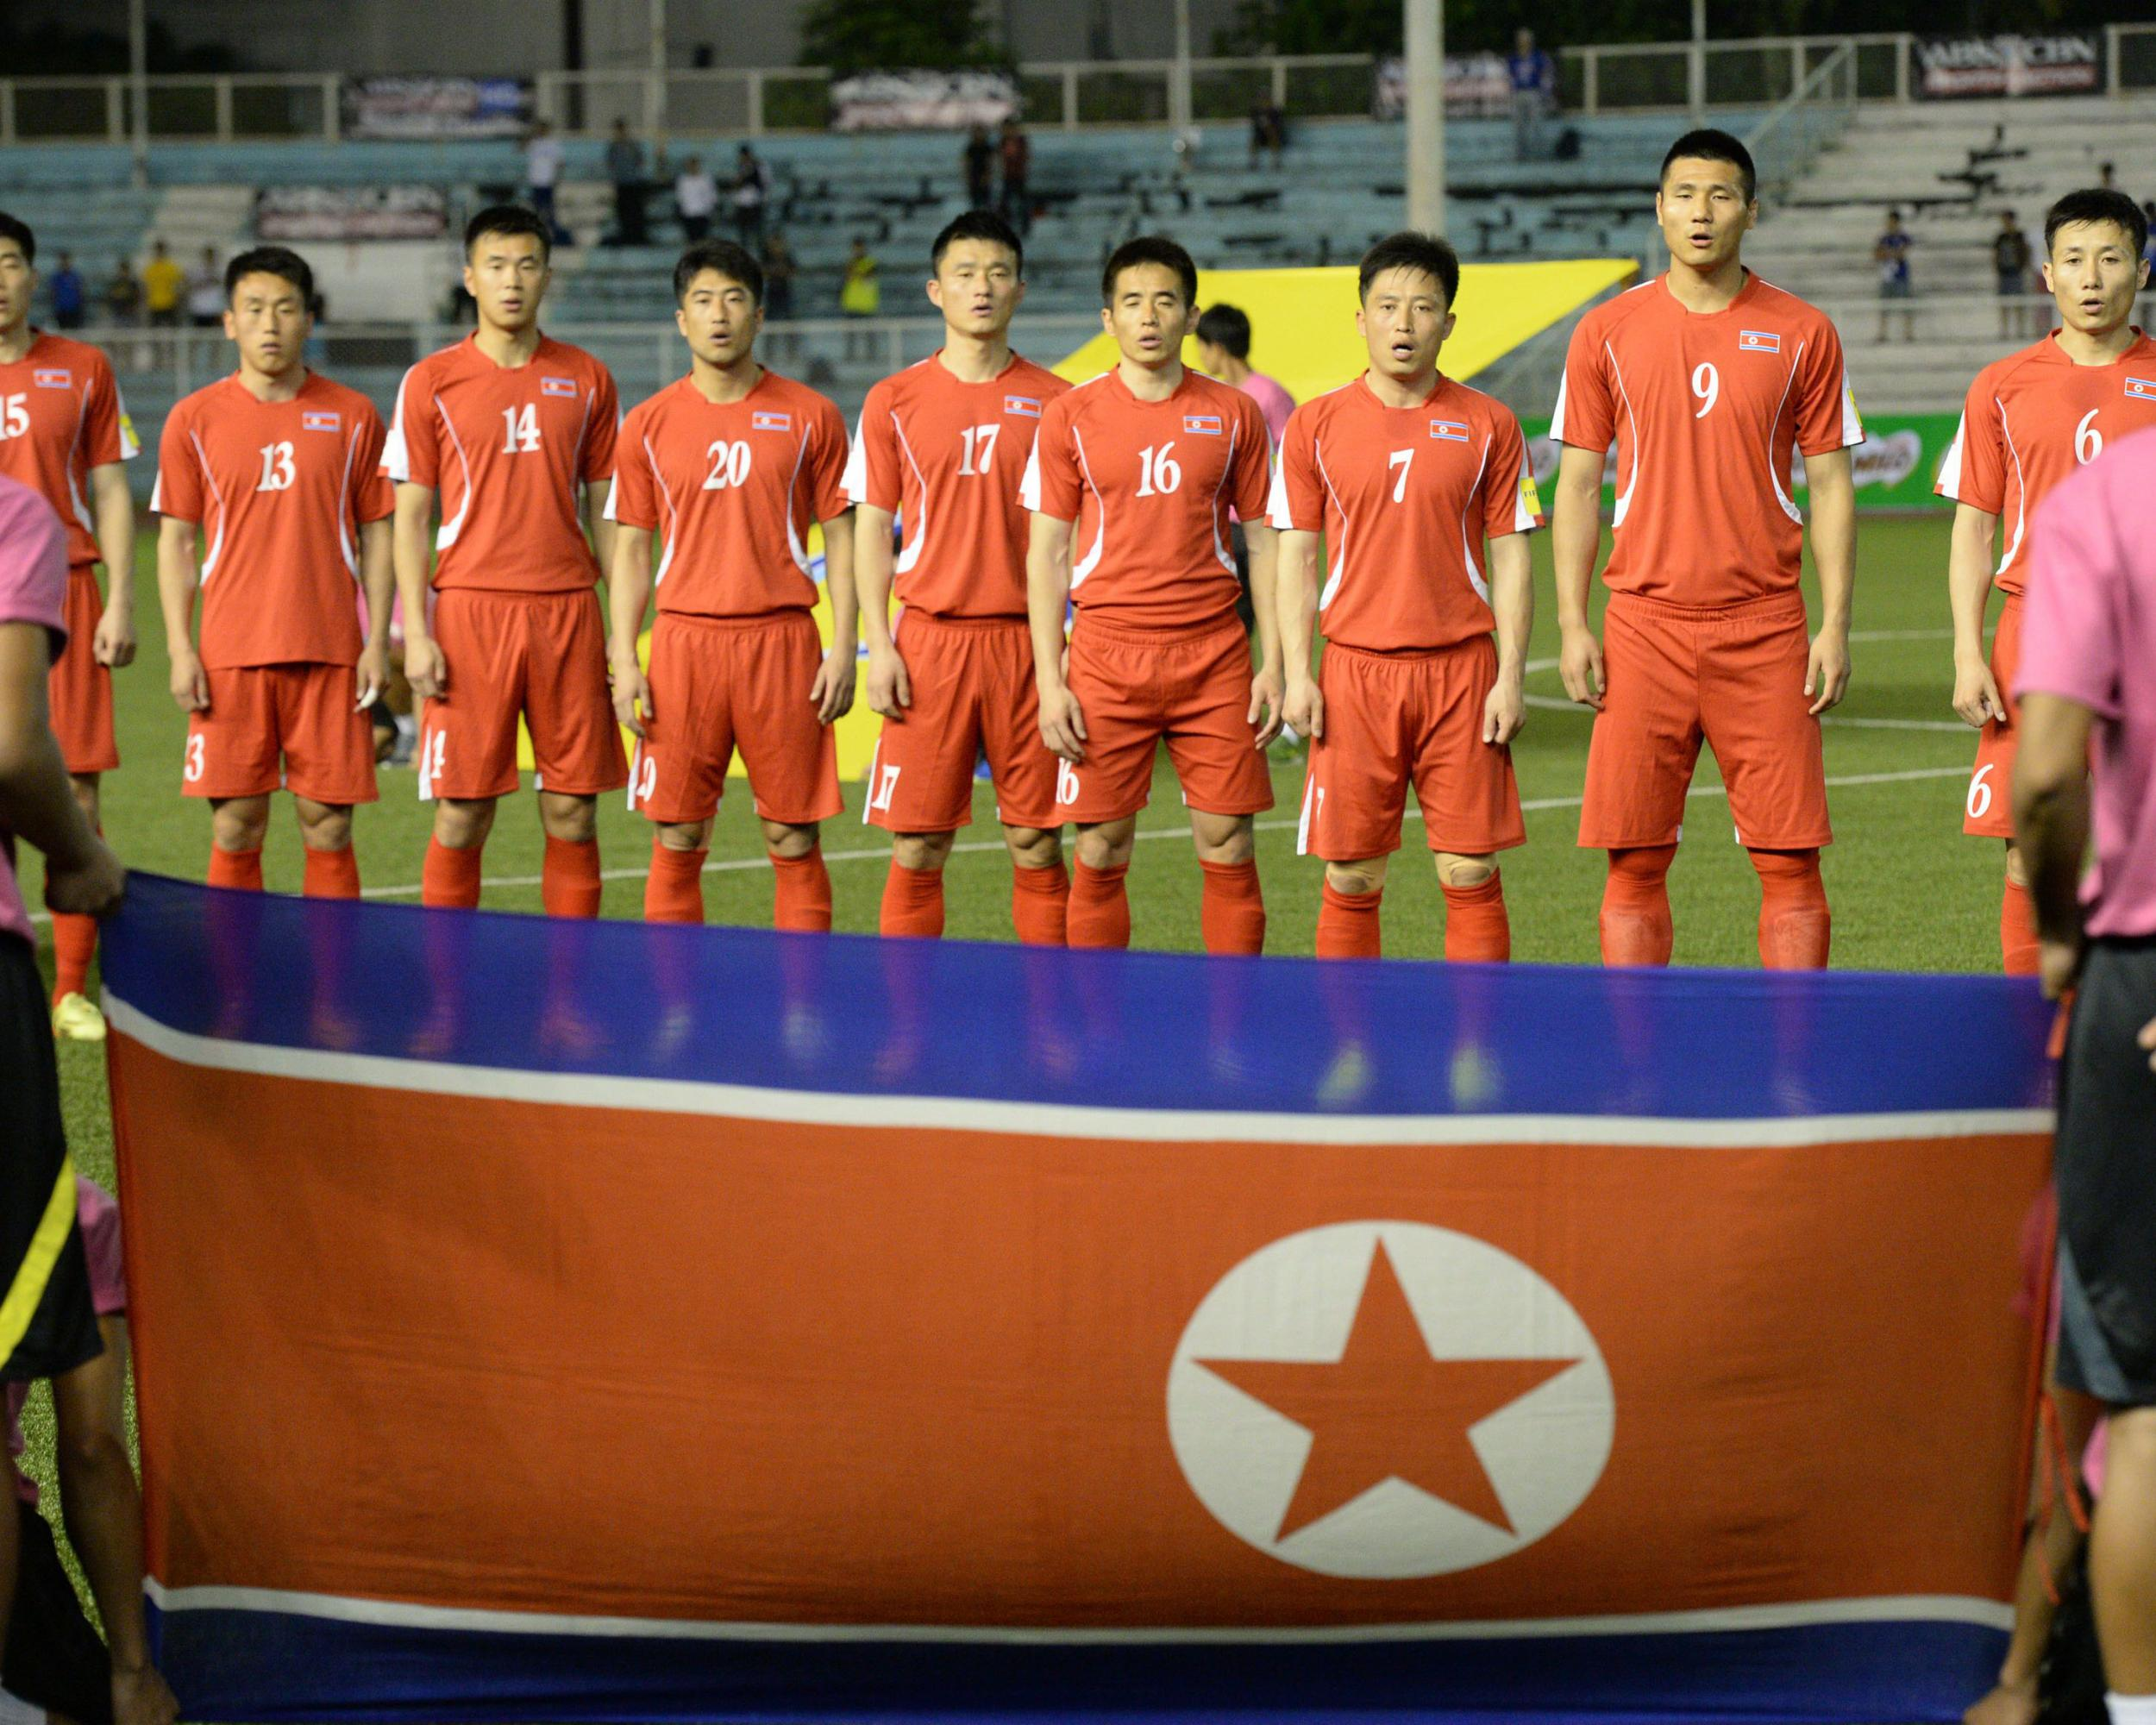 Football in North Korea under Kim Jong-un - an inside look at the beautiful game being played in shadow of nuclear war